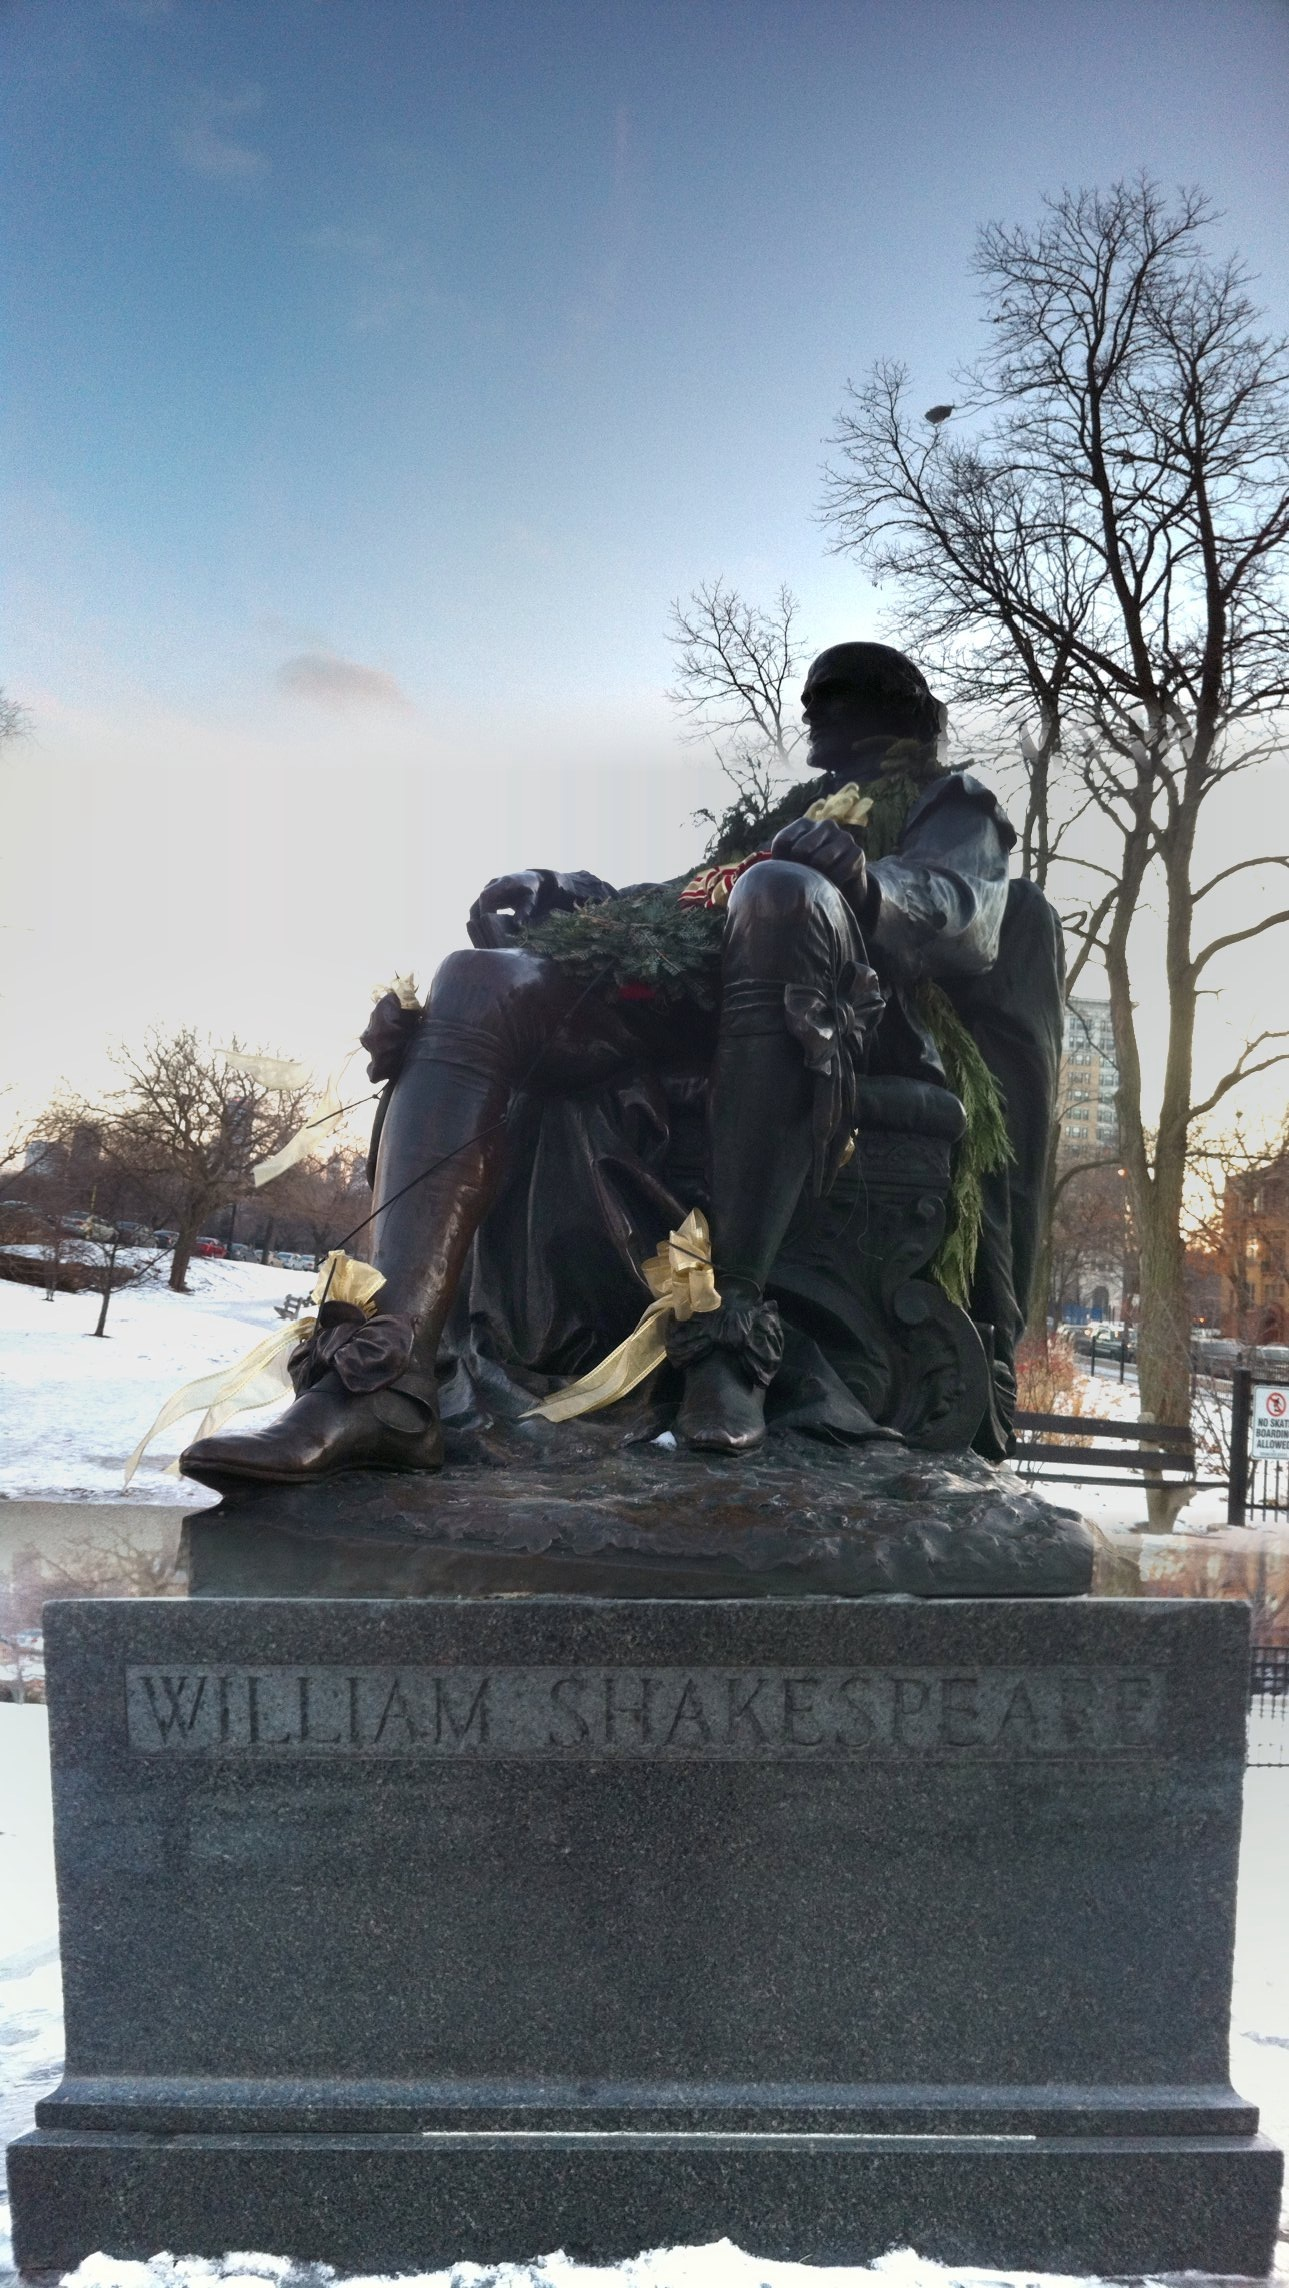 essay on william shakespeare biography biography essays biography  user only william shakespeare simple english the a recently garlanded statue of william shakespeare in lincoln